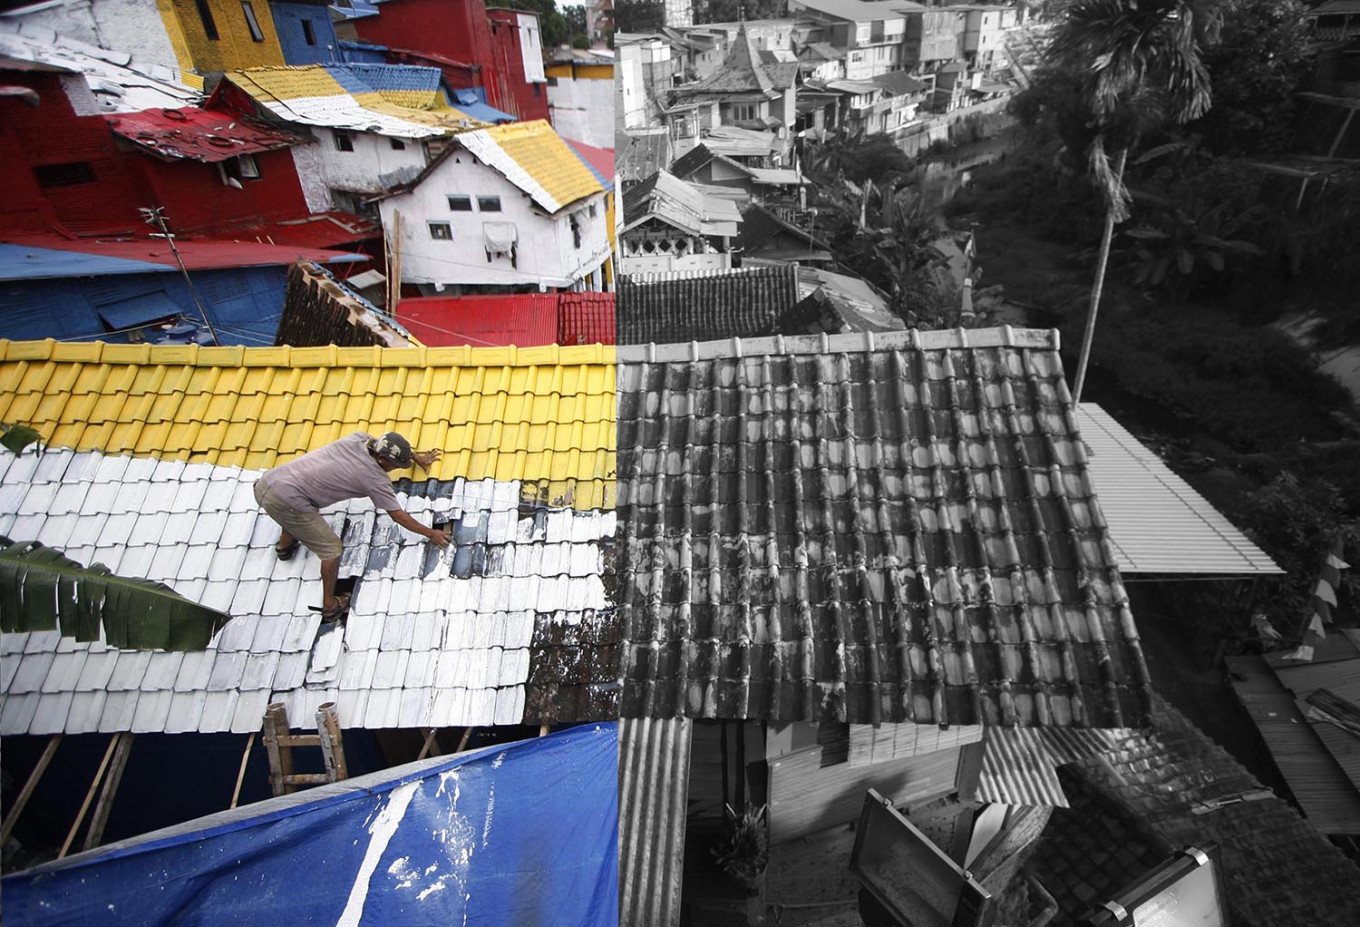 (Left) Painting the housing complex in April 2015. (Right) The colors have faded four years later. JP/Boy T Harjanto